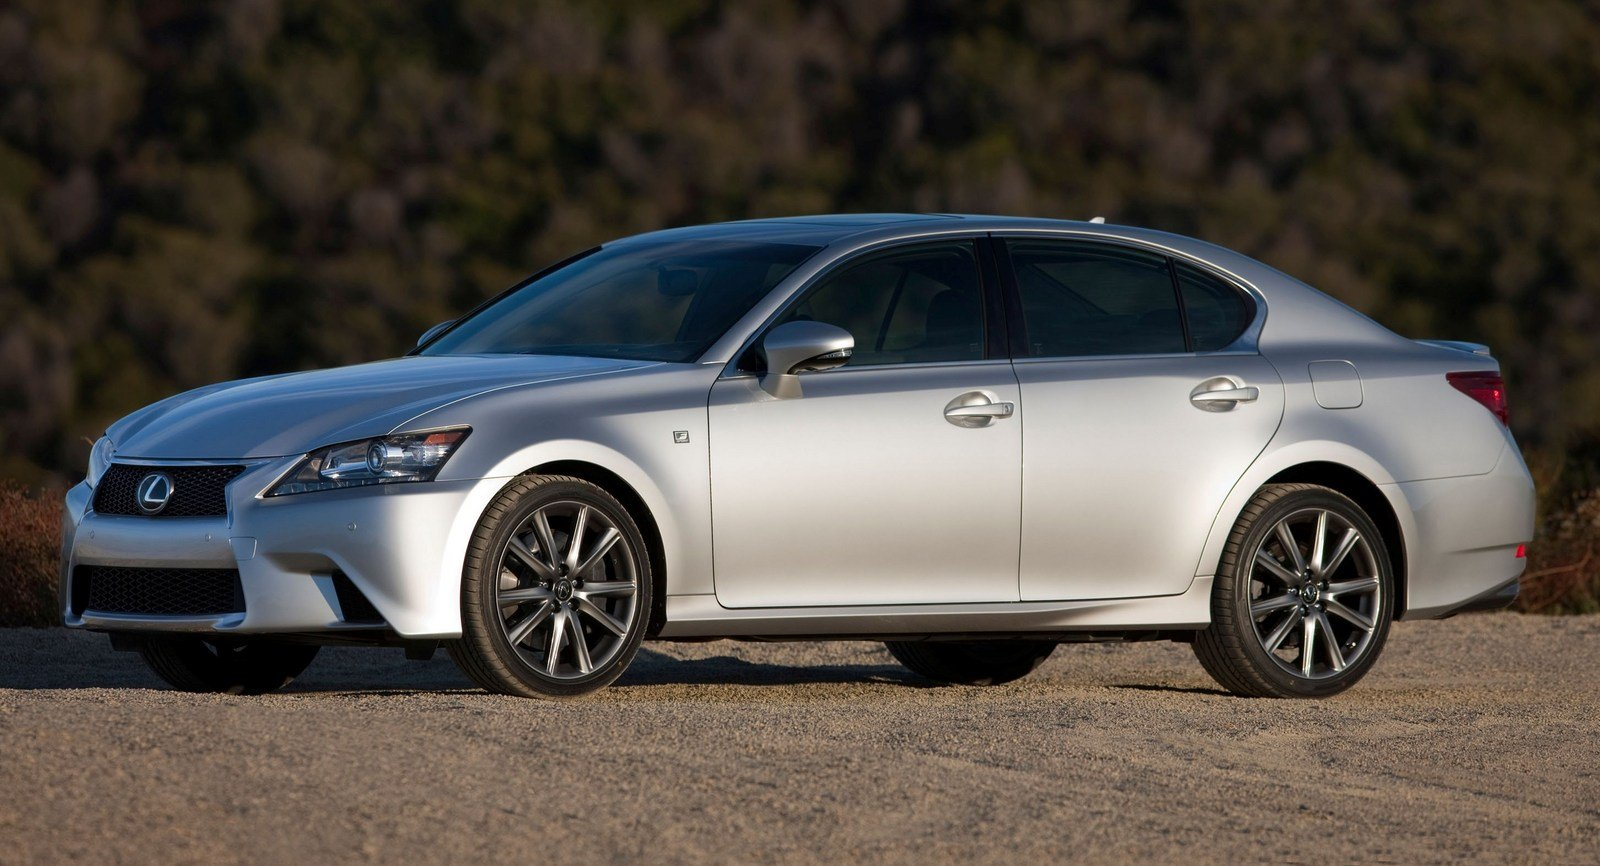 2014 lexus gs 350 picture 525799 car review top speed. Black Bedroom Furniture Sets. Home Design Ideas